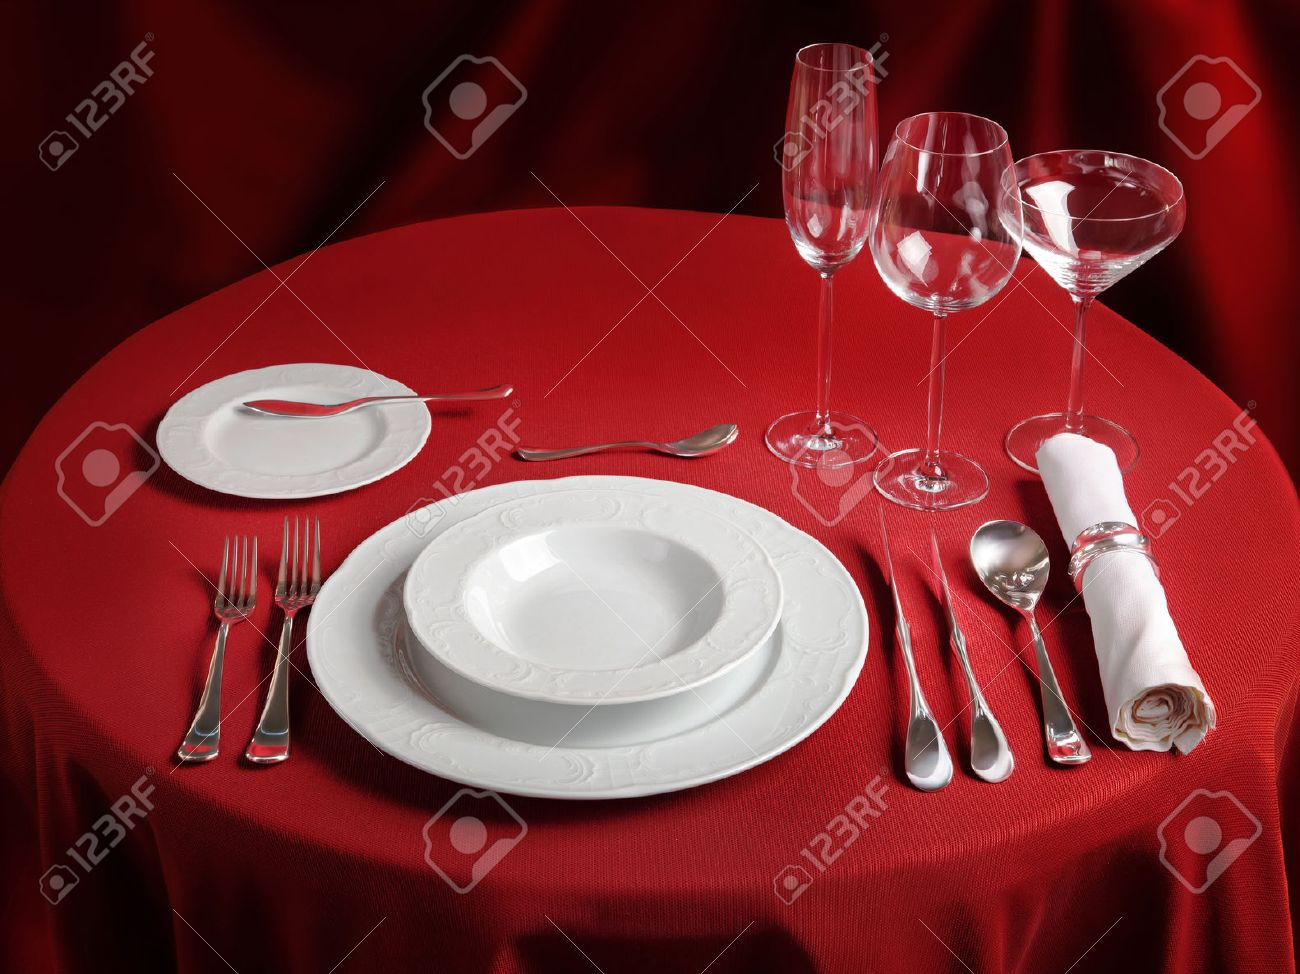 Red Table With Dinner Set. Professional Banquet Table Setting Stock Photo    48794999